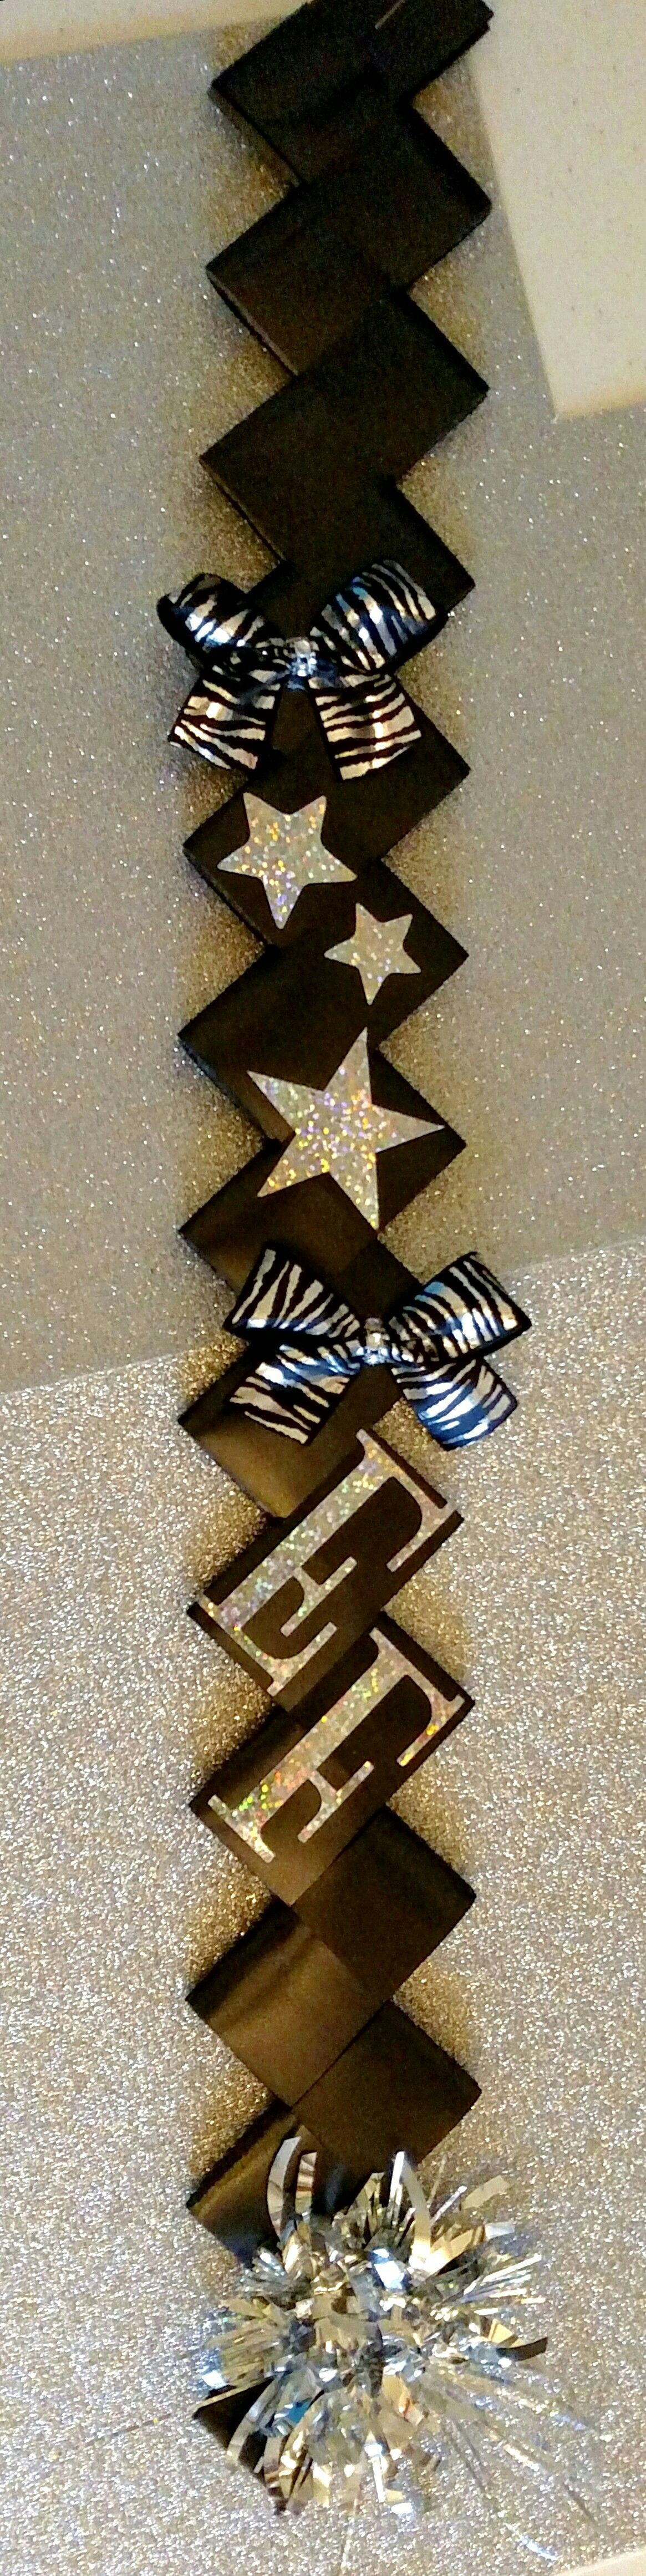 Black diamond braid for homecoming mum. Silver stickers, zebra print bows and tinsel. Designed by Crafty bug #homecomingmumsdiy